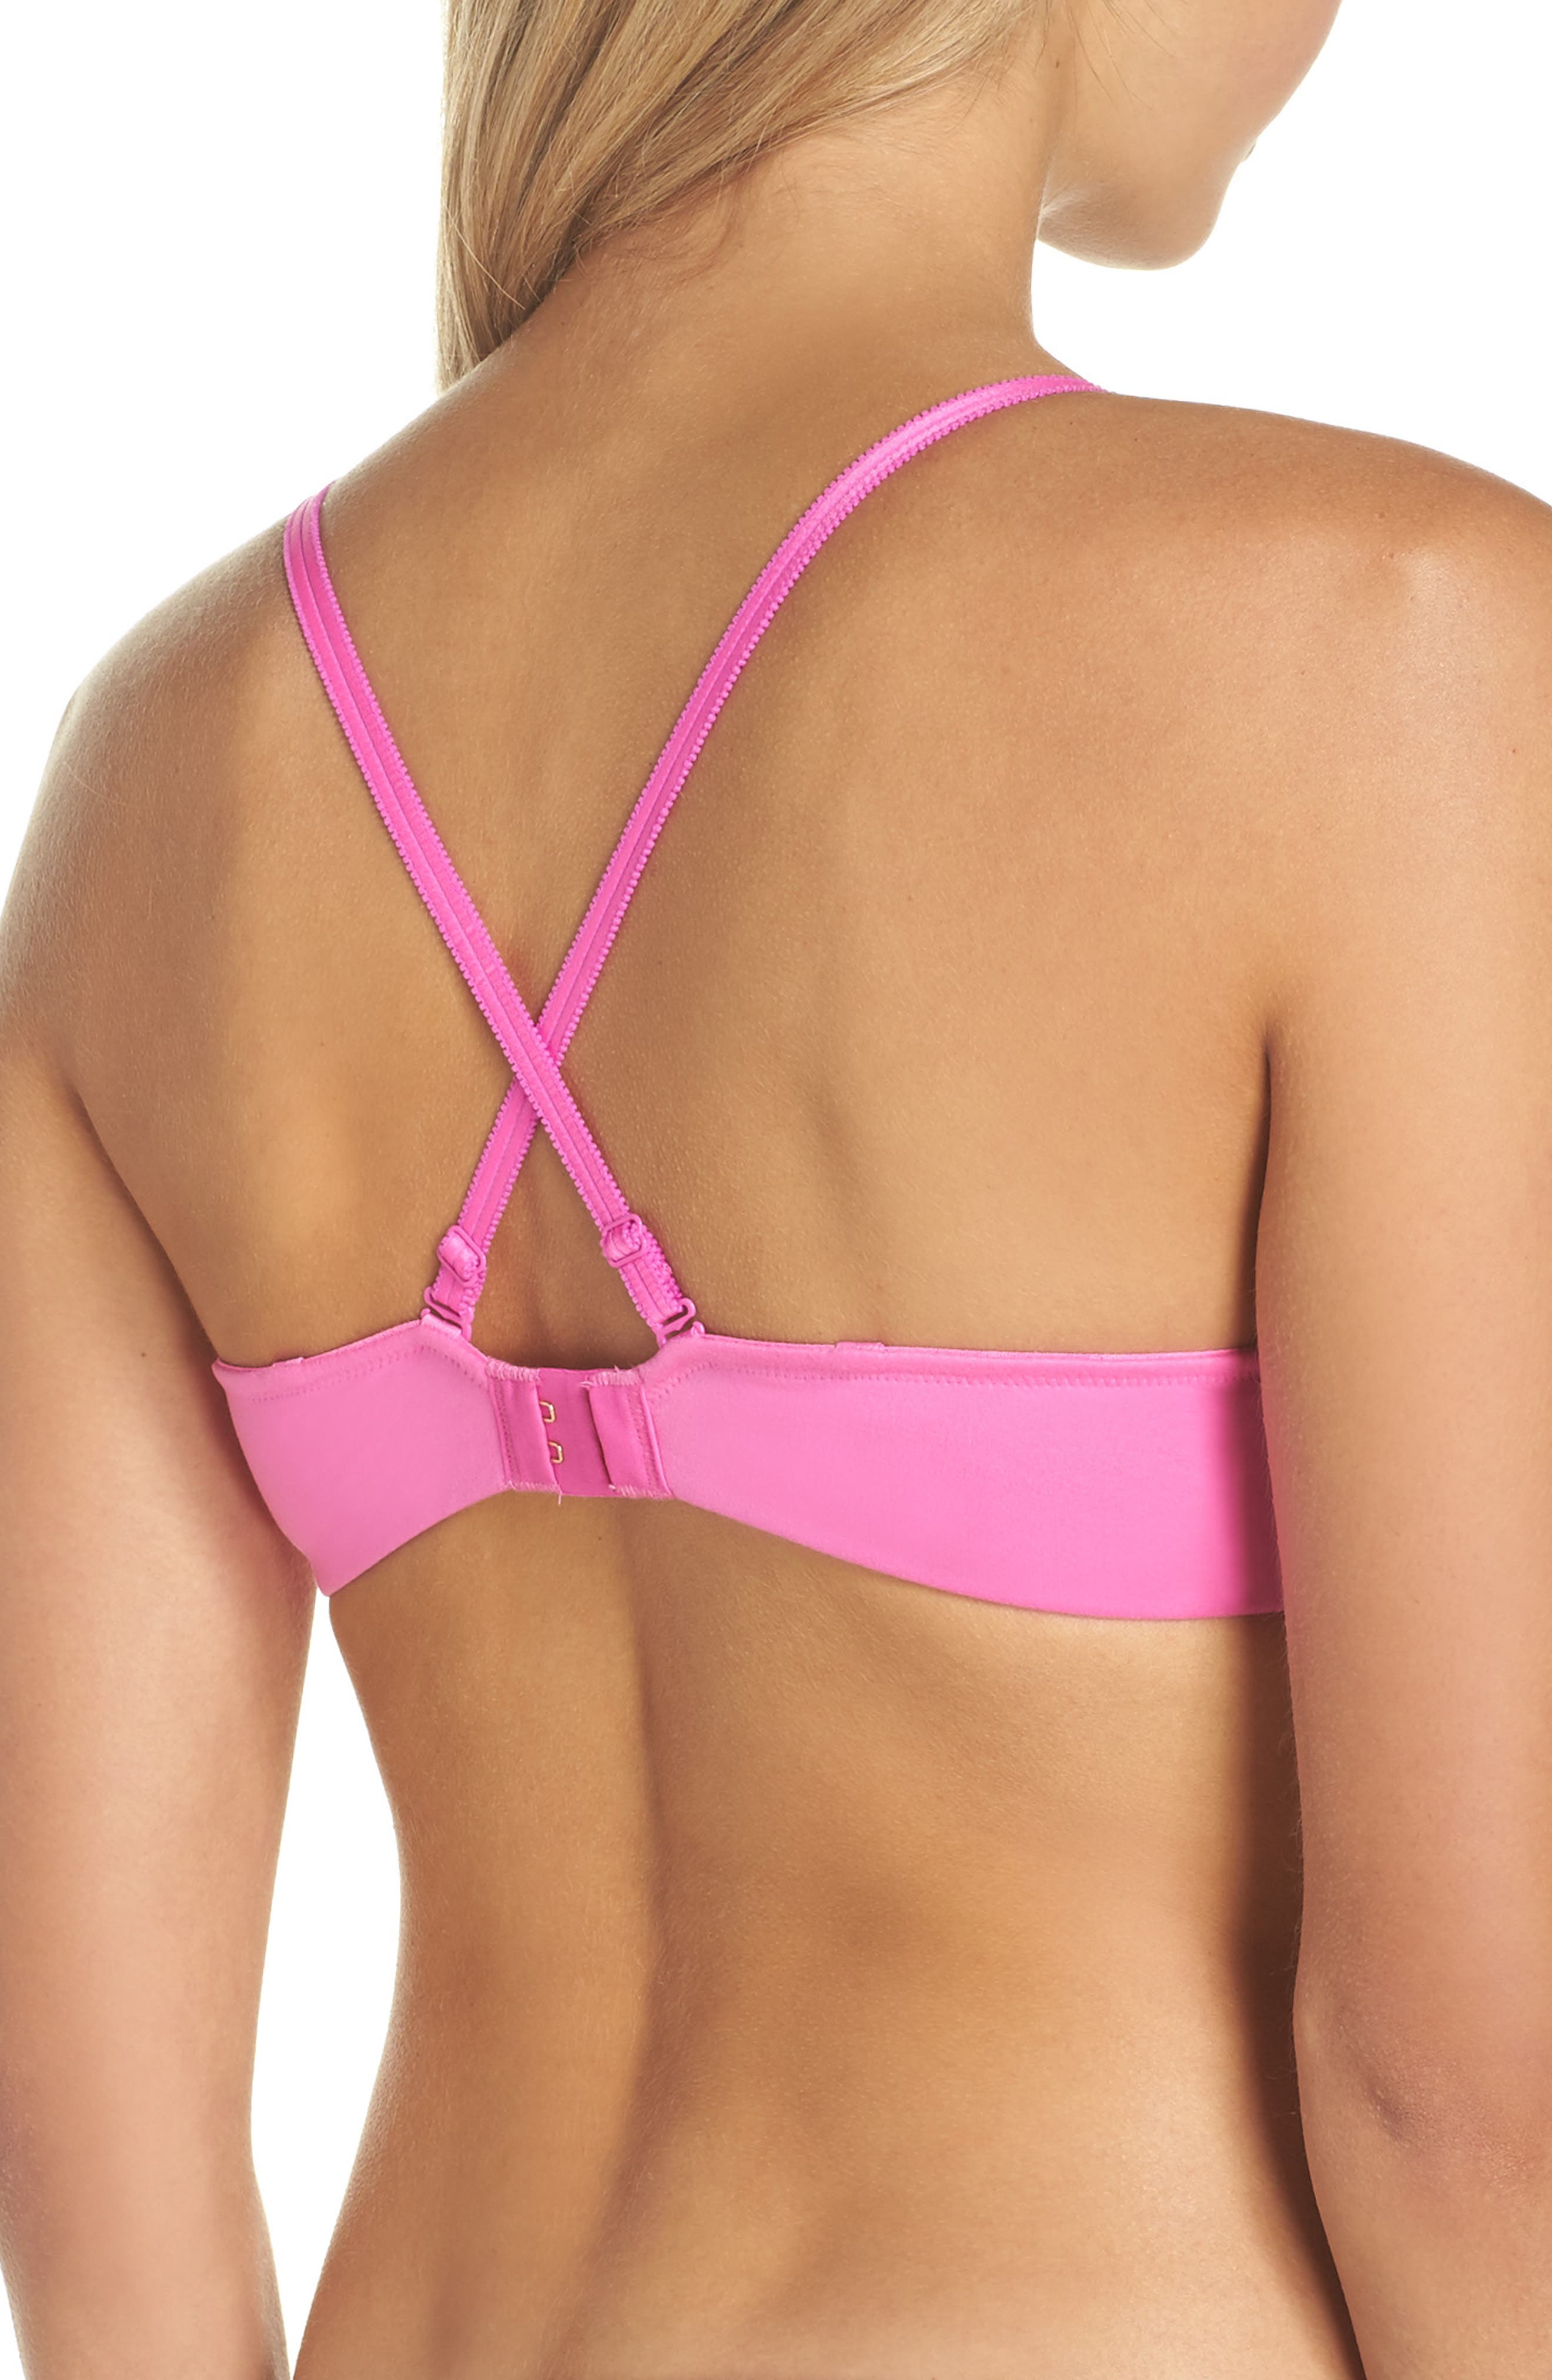 Flirt & Fun Underwire Push-Up Bra,                             Alternate thumbnail 3, color,                             Pinky Promise